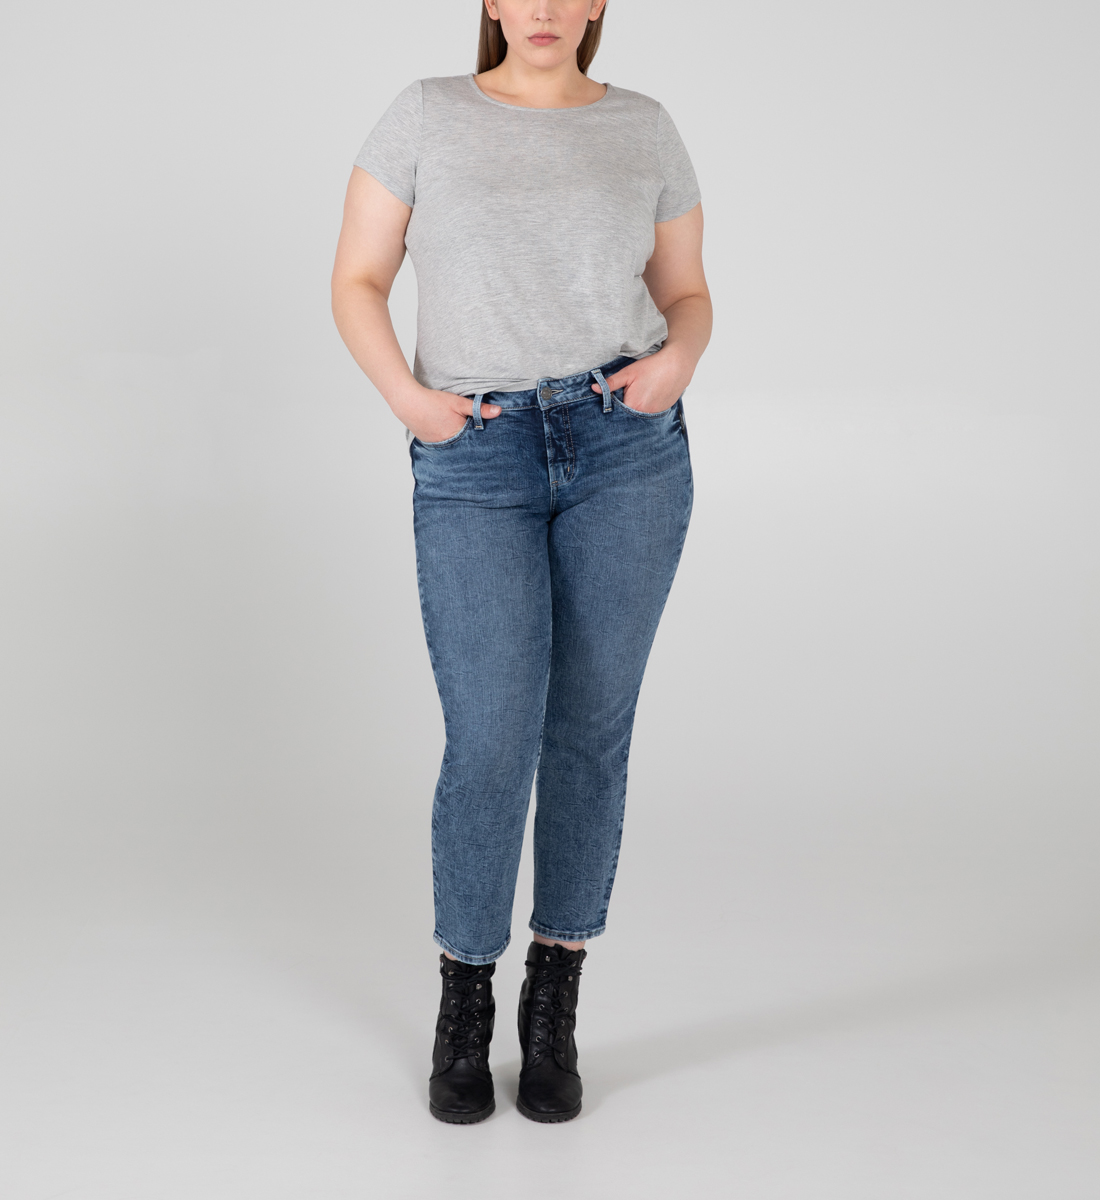 Silver Jeans Suki Mid Rise Straight Crop Jeans Plus Size